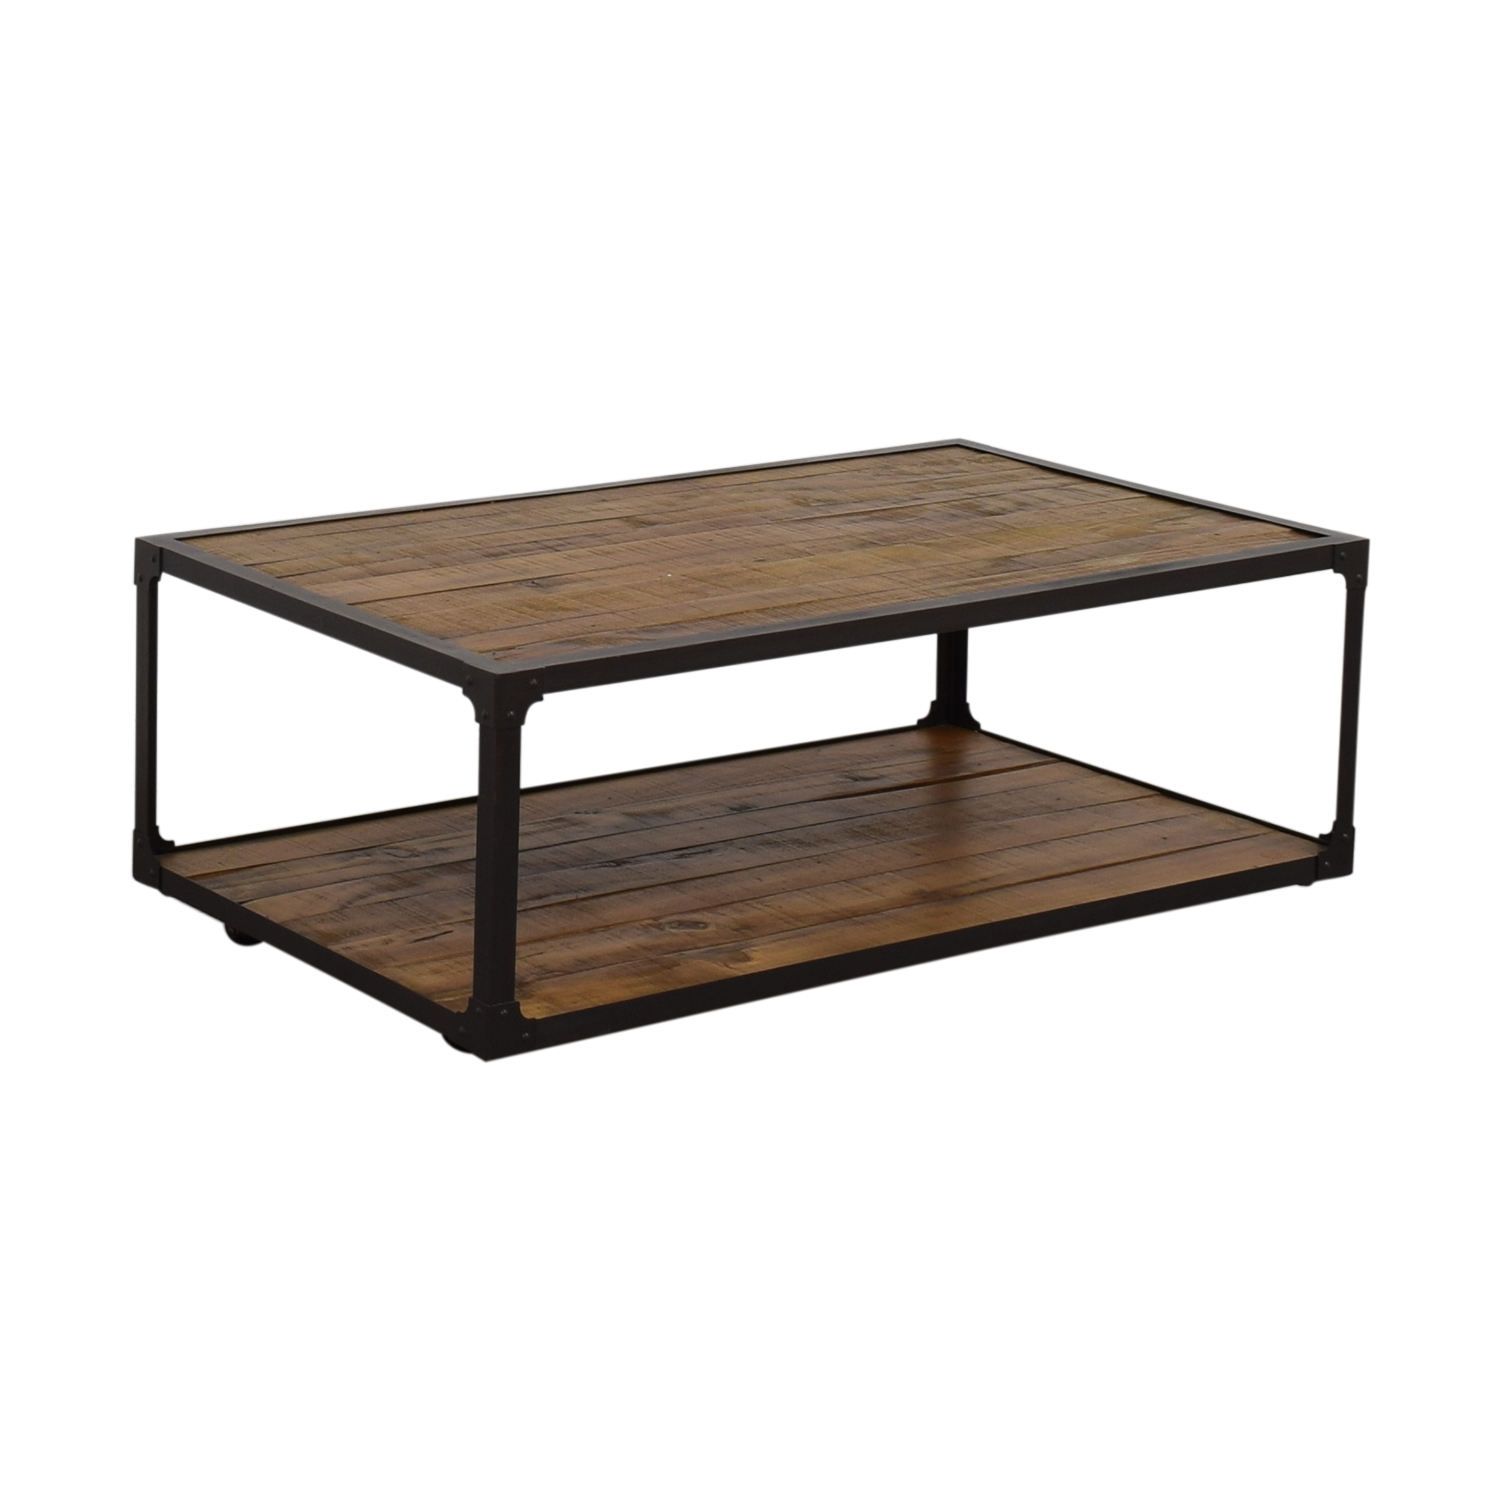 Rustic Wood Coffee Table second hand